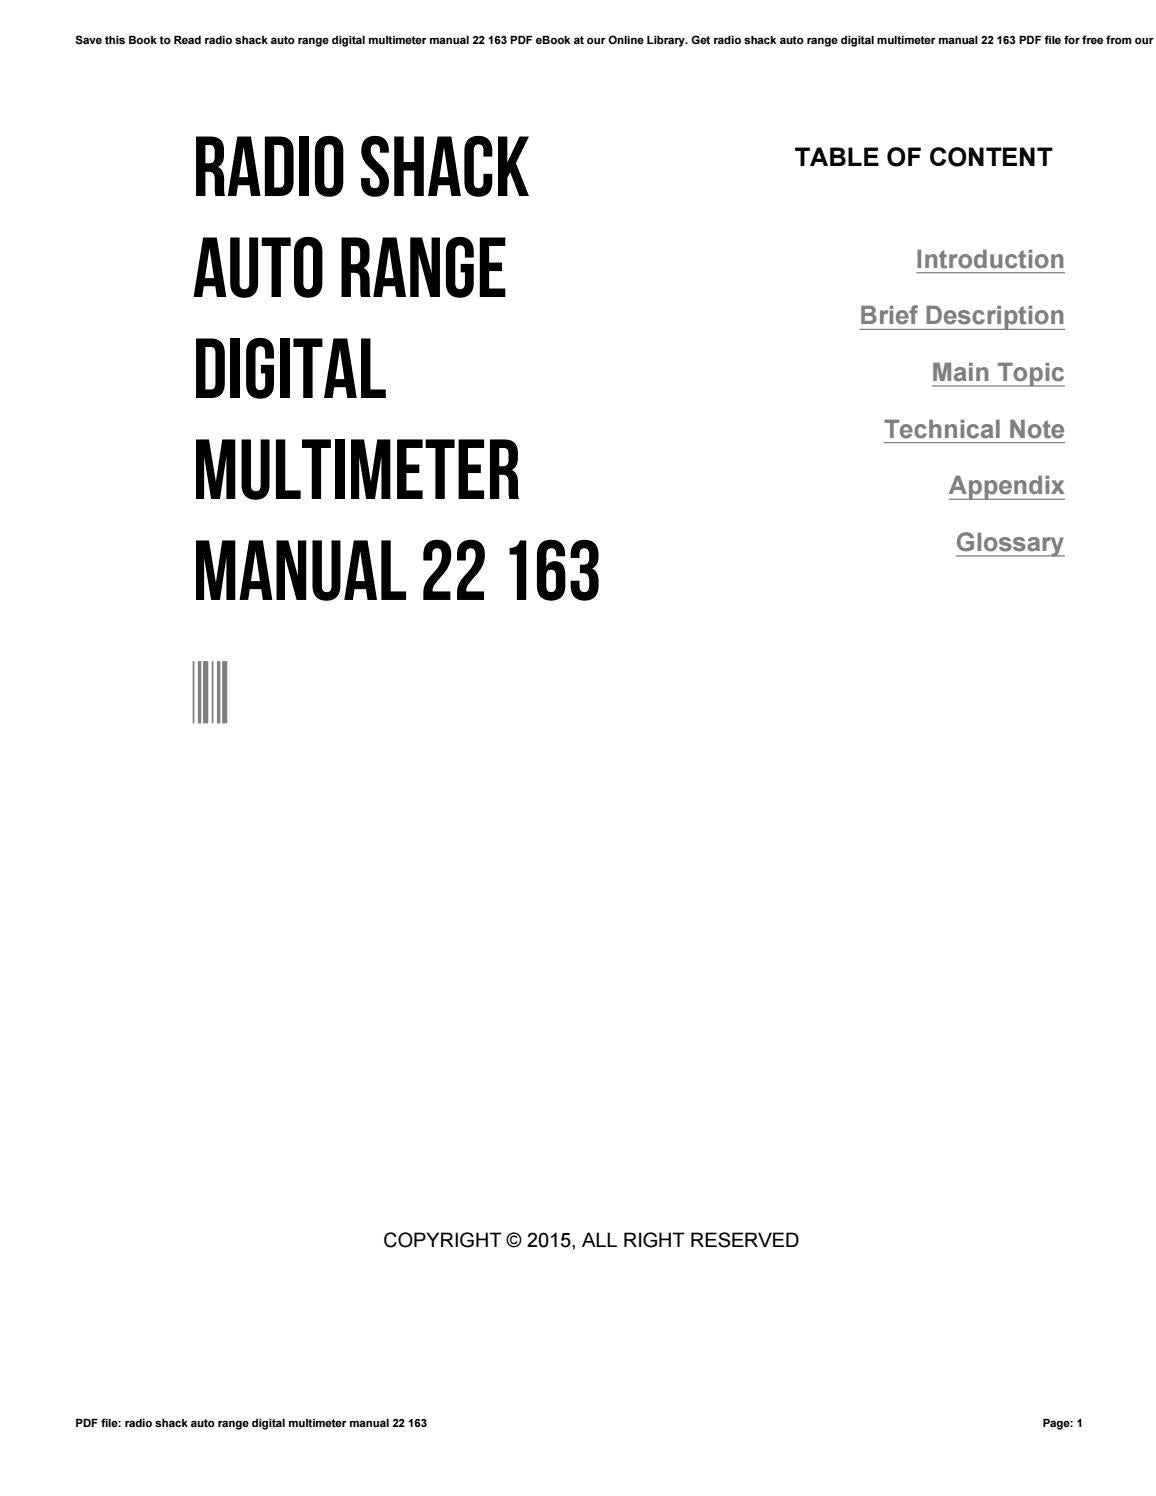 Radio shack auto range digital multimeter manual 22 163 by